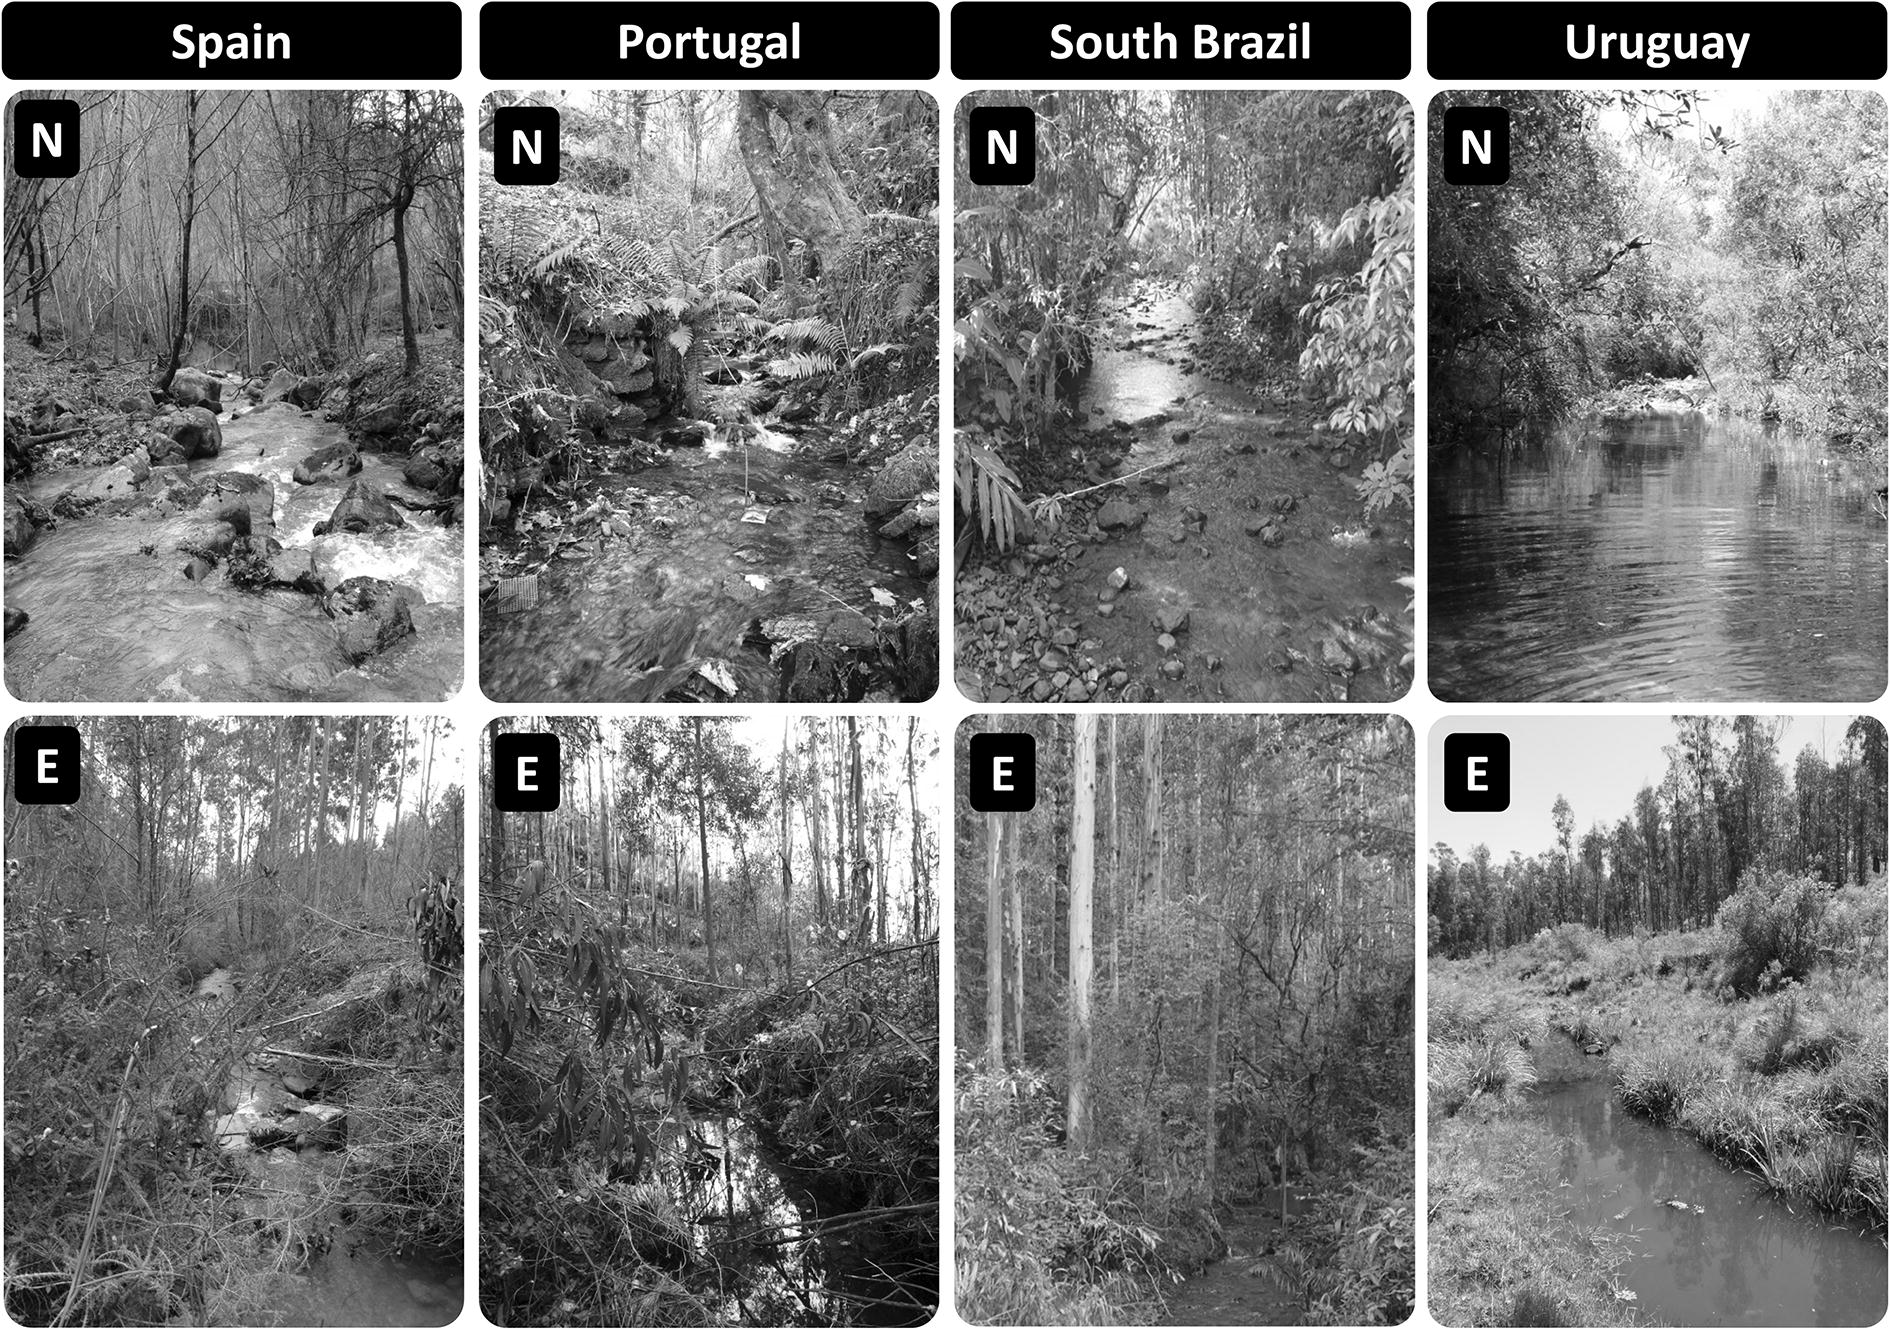 A Global Assessment of the Effects of Eucalyptus Plantations